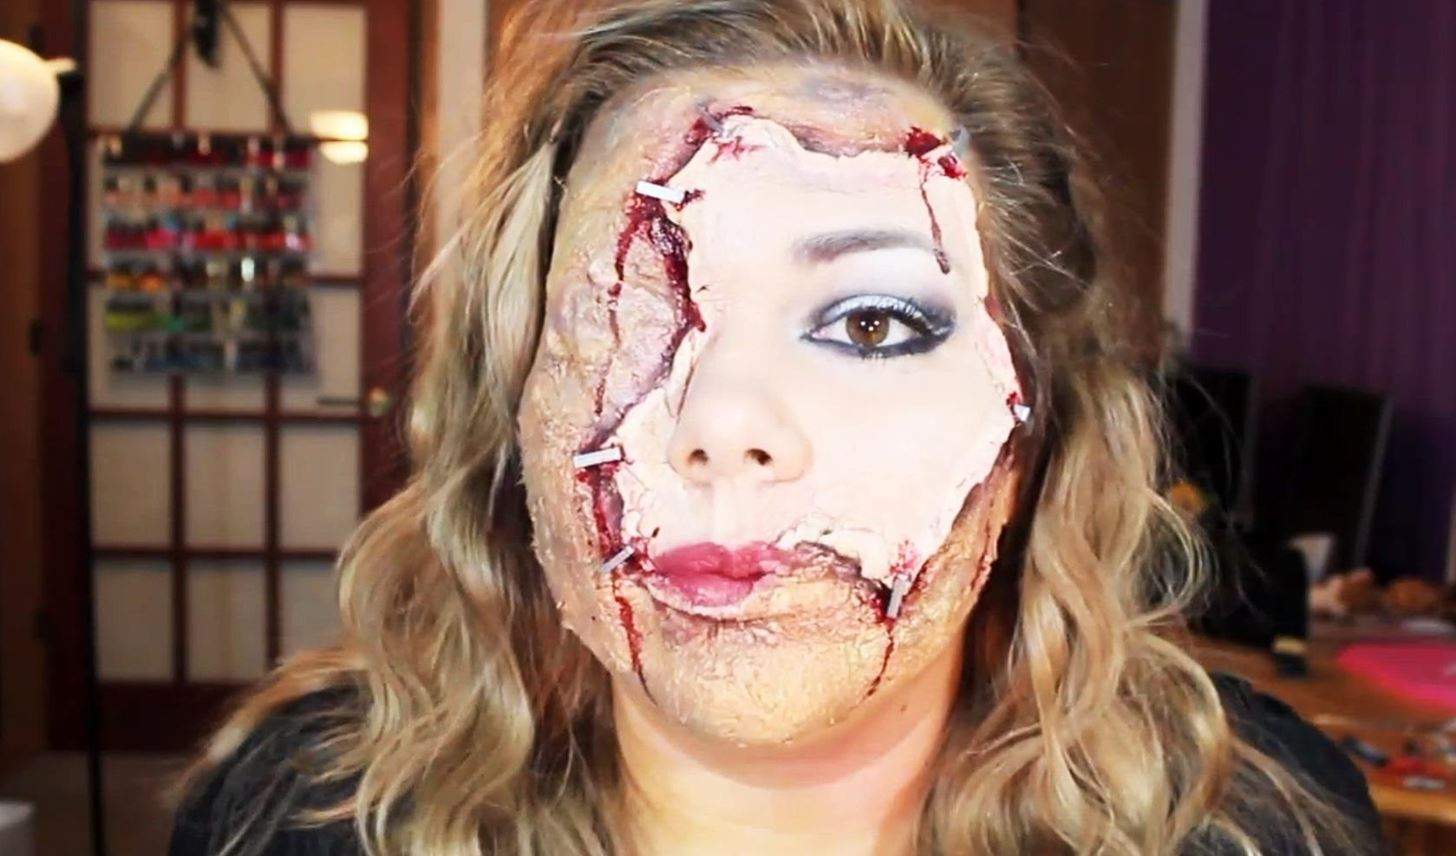 Horrifying halloween makeup diy scarred face with flayed human horrifying halloween makeup diy scarred face with flayed human skin mask halloween ideas wonderhowto solutioingenieria Image collections